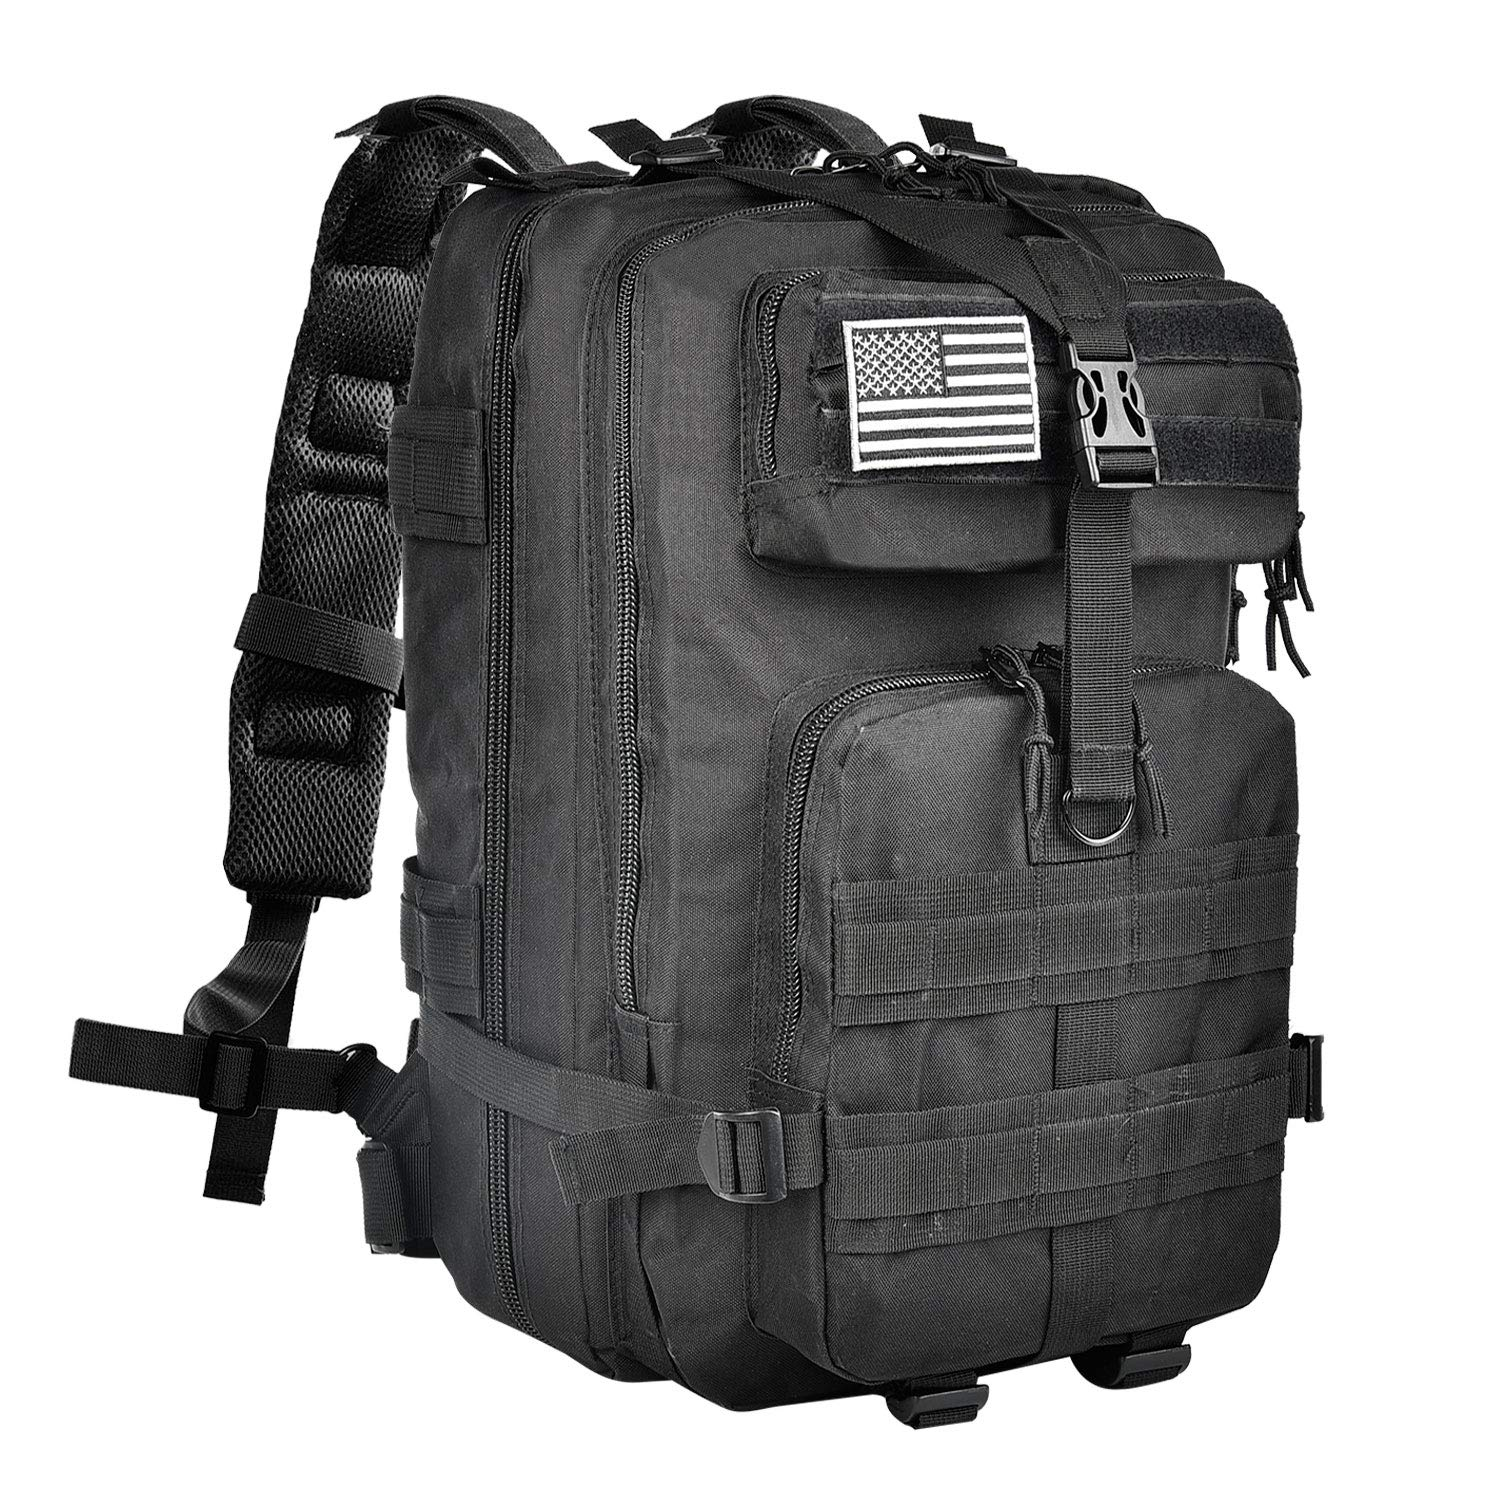 NOOLA Military Tactical Army Backpack 3 Day Pack Molle Bag Backpack Rucksacks for Outdoor Hiking Camping Trekking Hunting with Flag Patch Black